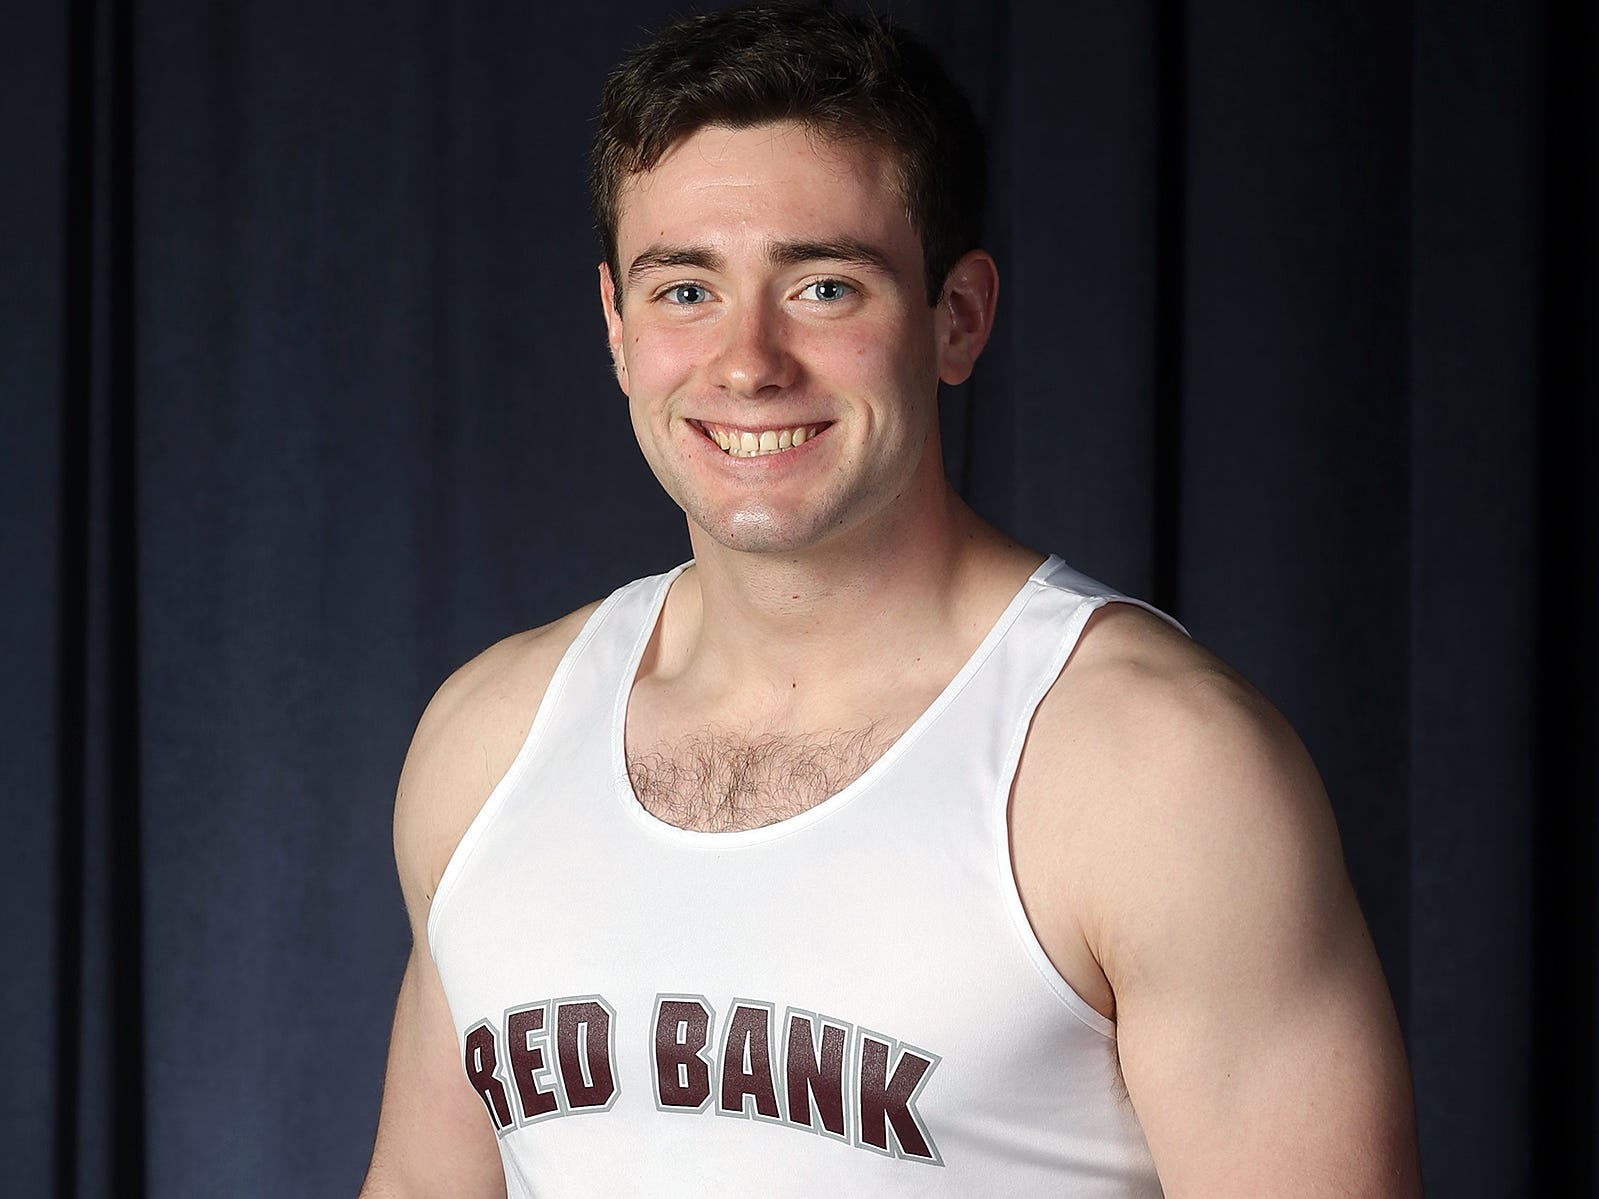 Brendan Loftus of Red Bank Regional during the All-Shore boys track team photo shoot at the Asbury Park Press in Neptune, NJ Thursday, March 14, 2019.